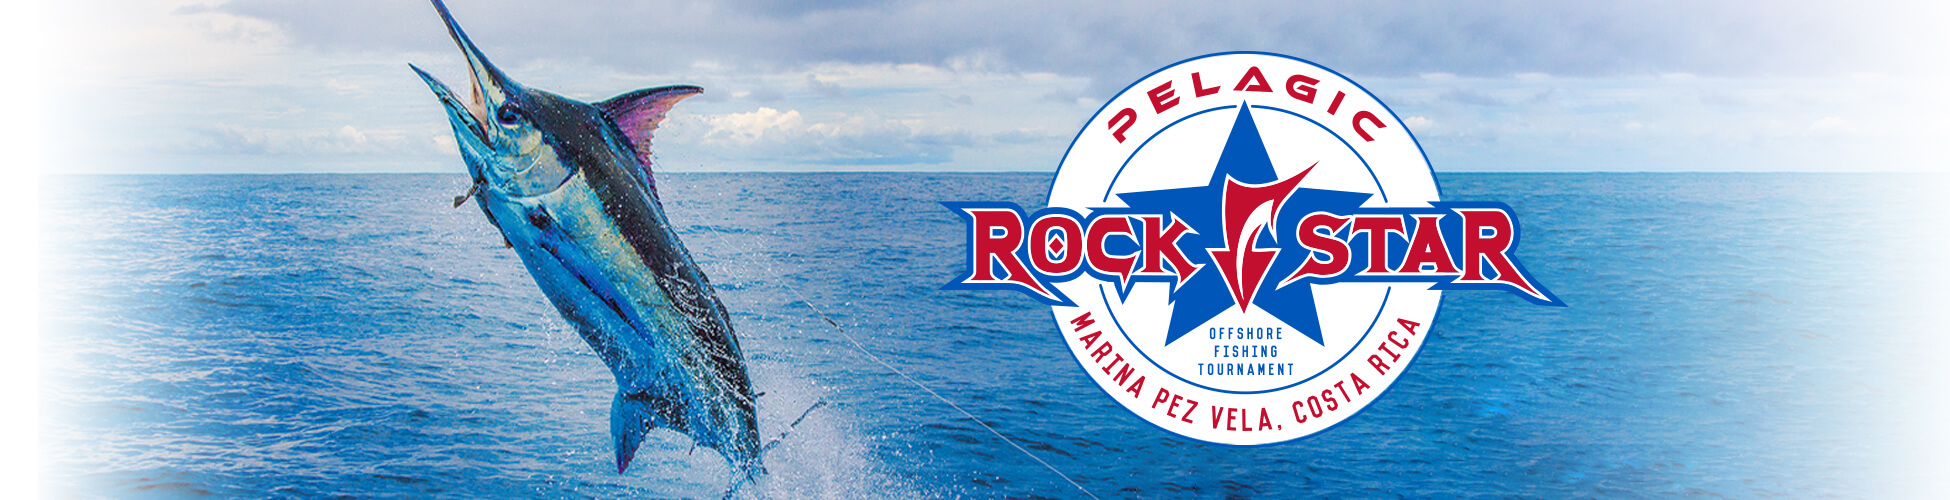 2021 Pelagic RockStar Offshore Tournament - Live Scoring provided by CatchStat.com